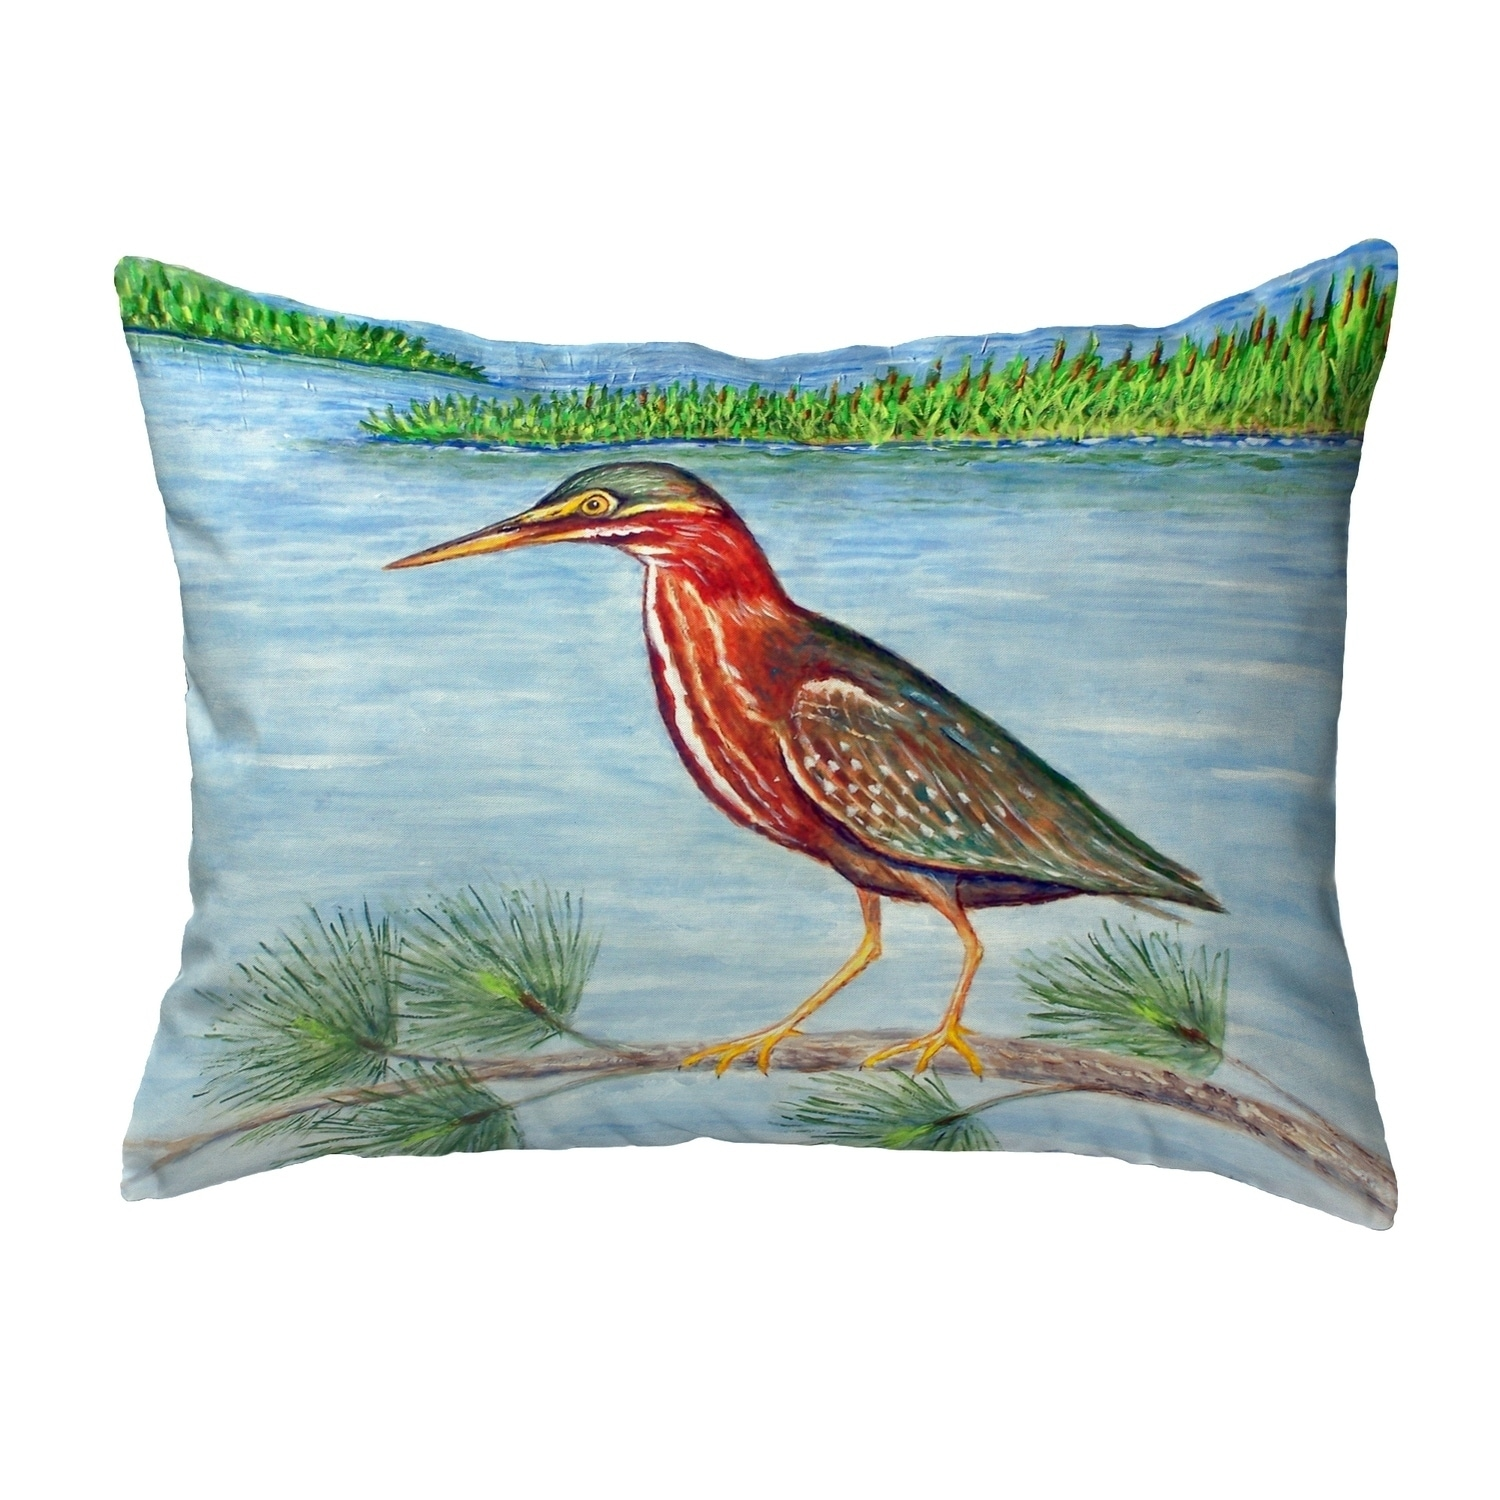 Green Heron Ii Small No Cord Pillow 11x14 On Sale Overstock 30421528